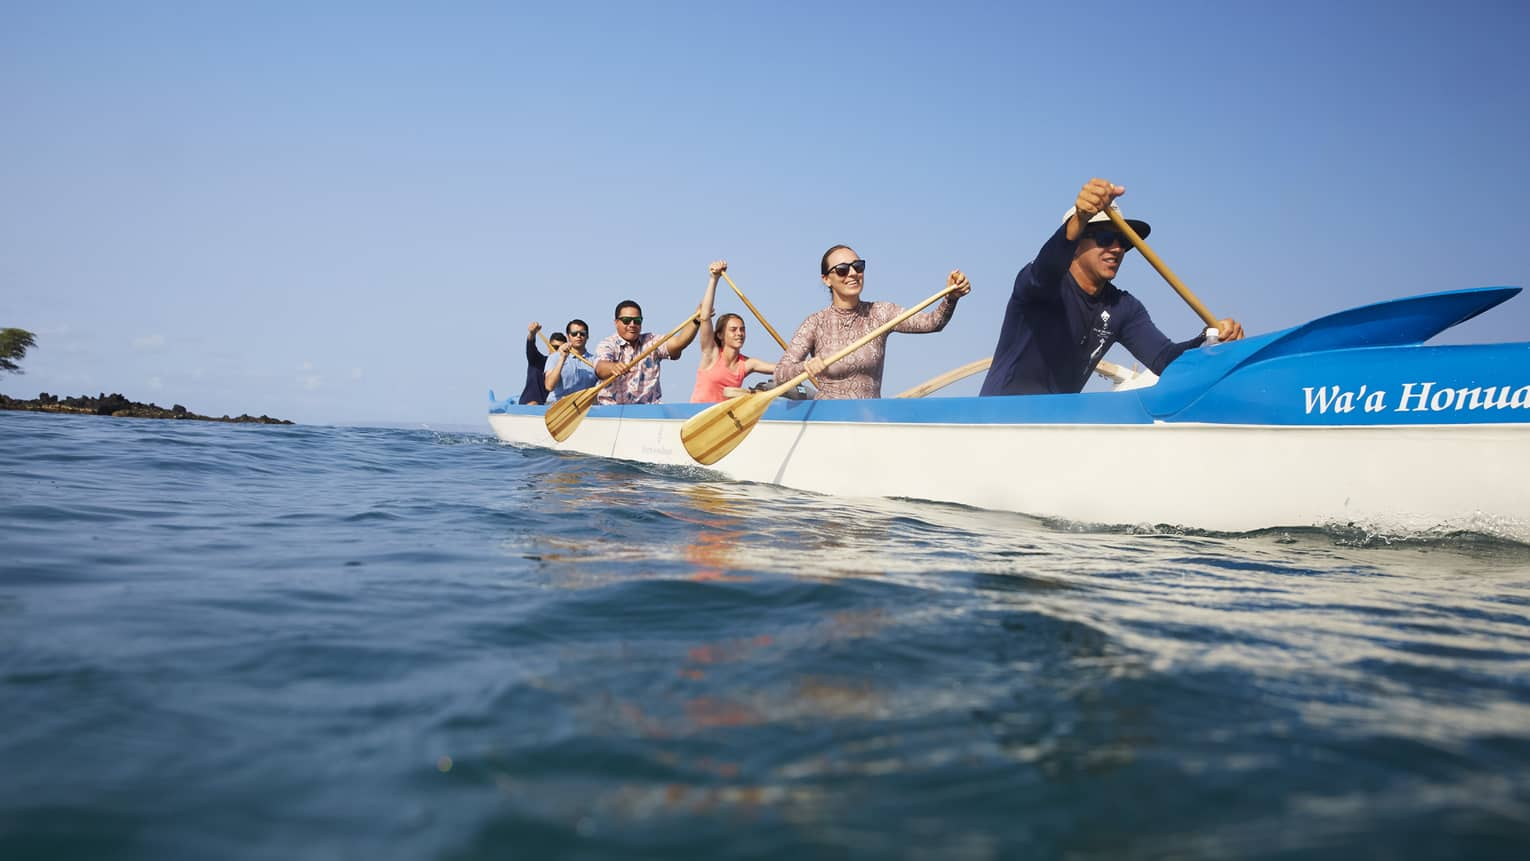 A group of guests kayaking on the ocean